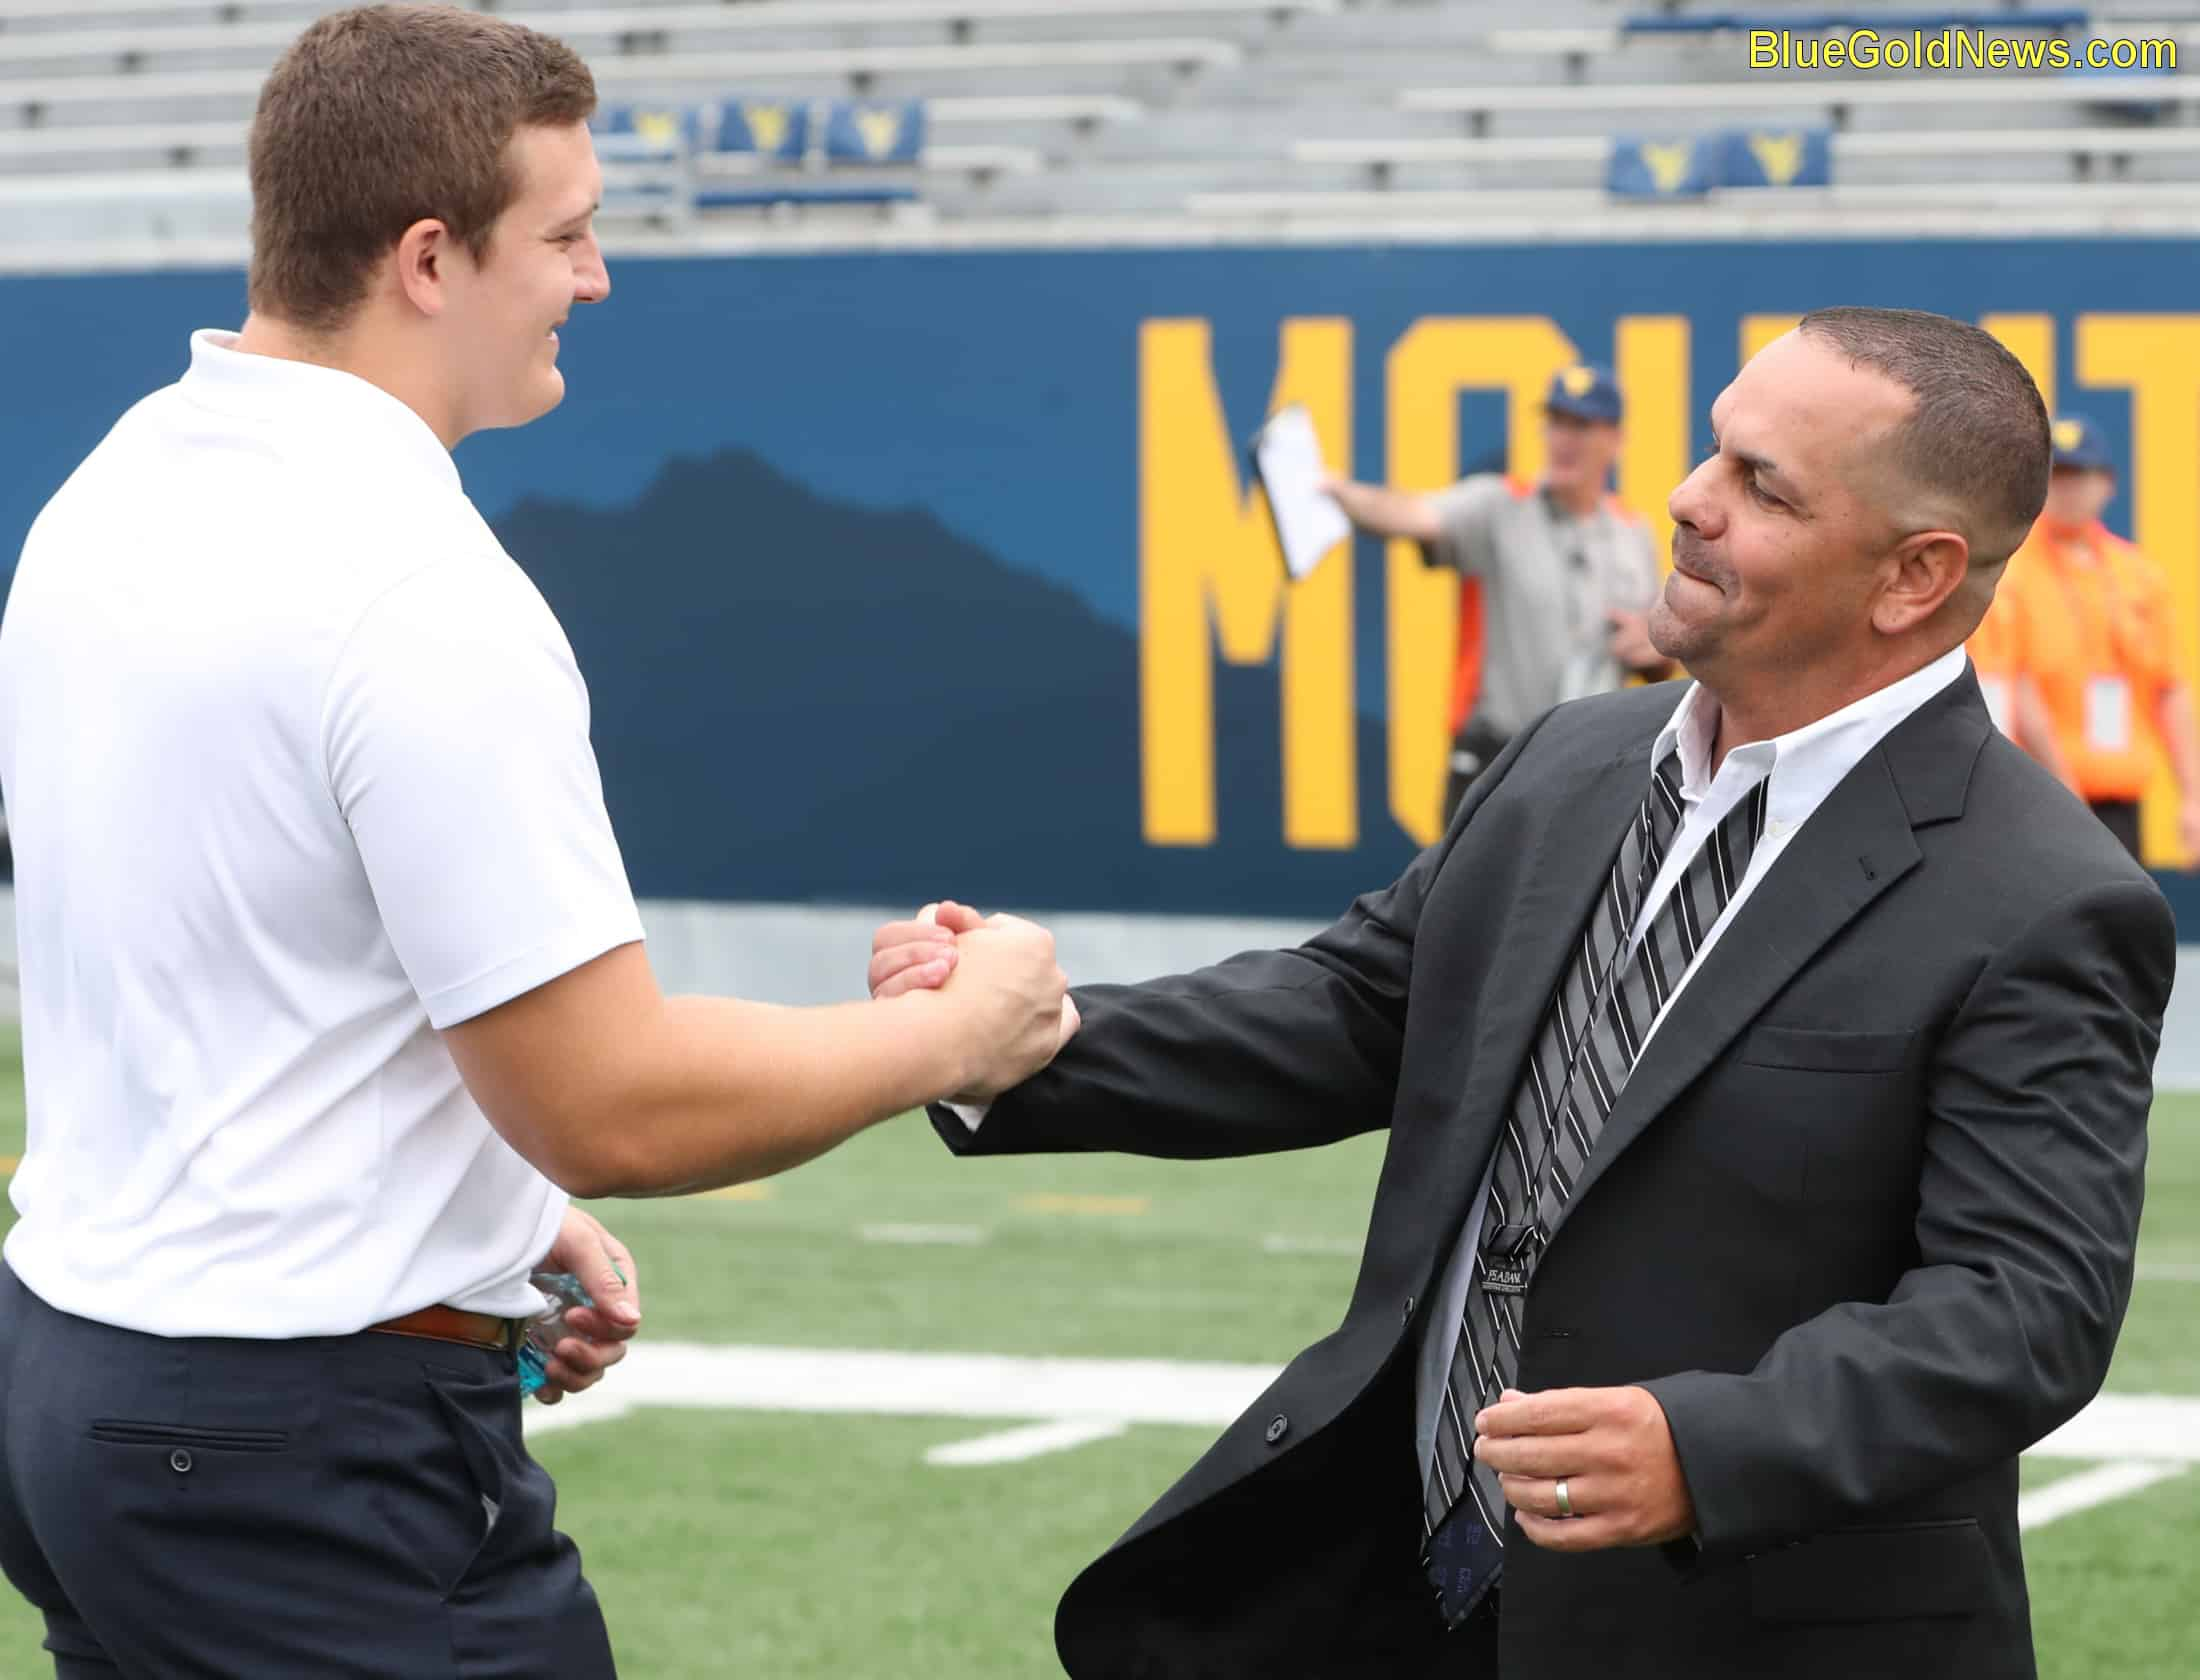 West Virginia defensive lineman Reese Donahue (l) greets N.C. State co-defensive coordinator Tony Gibson